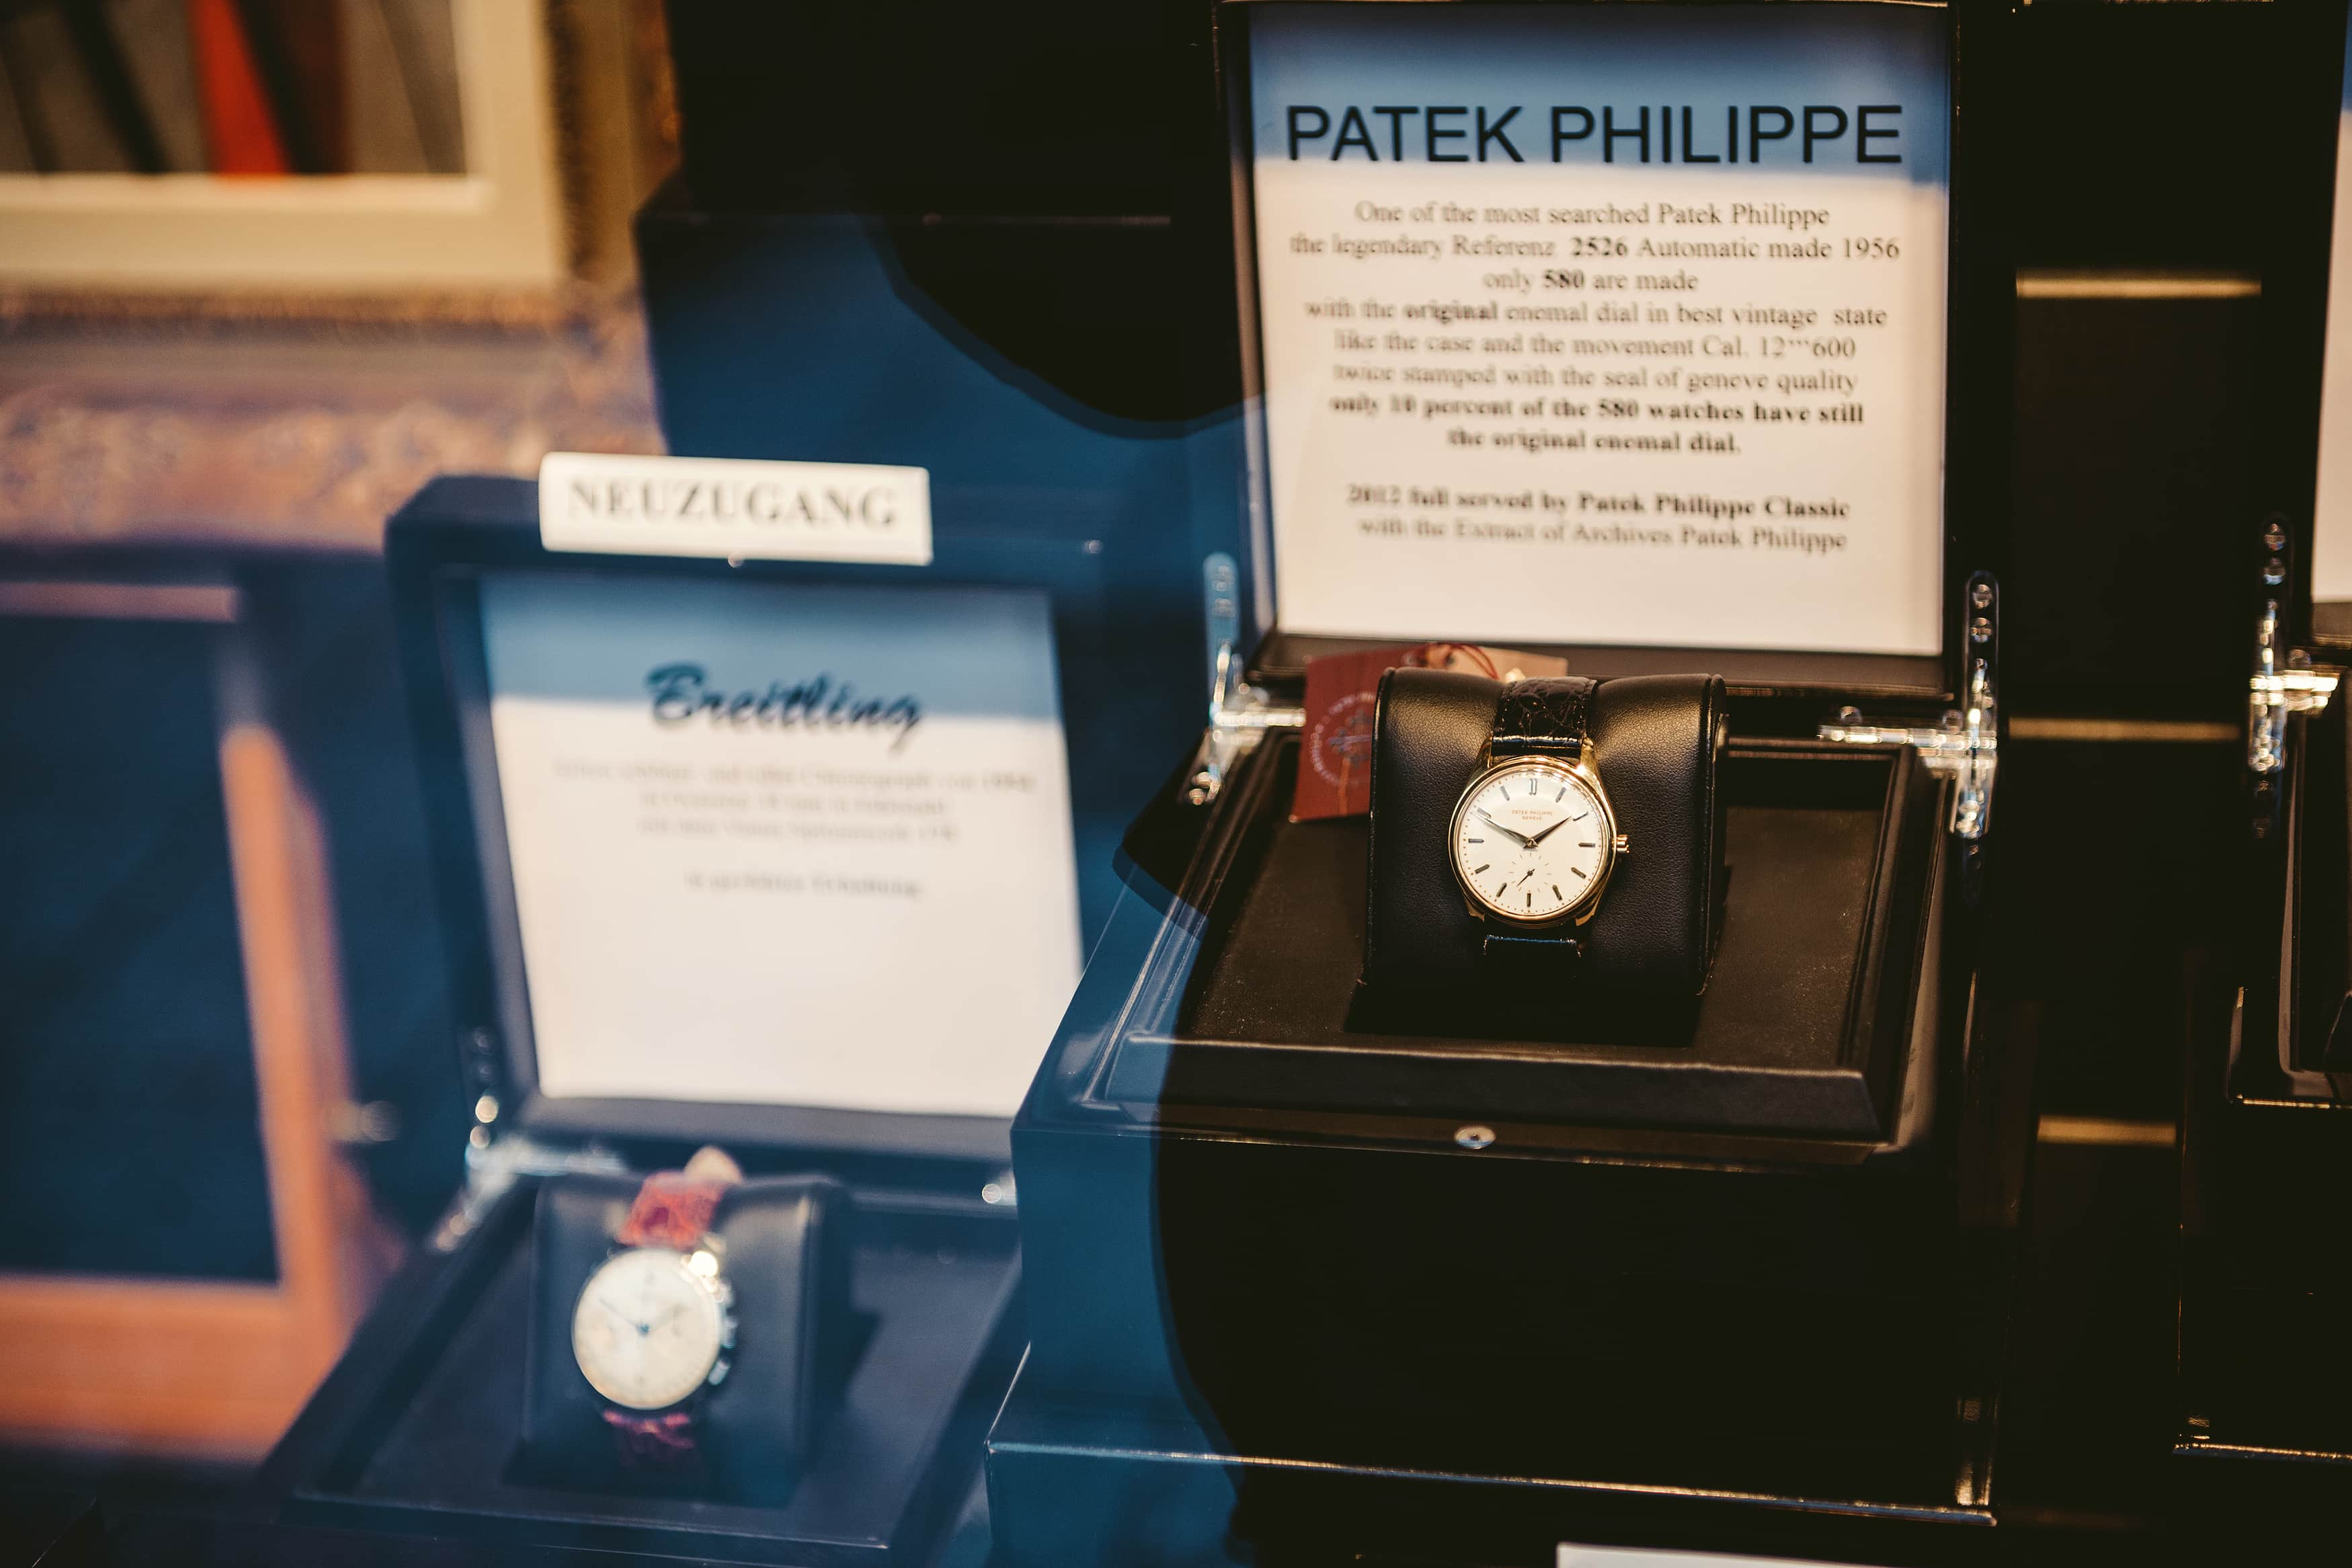 Patek Philippe Museum - Patek Philippe Watches vs Rolex Watches: The Result is Up to You Only!